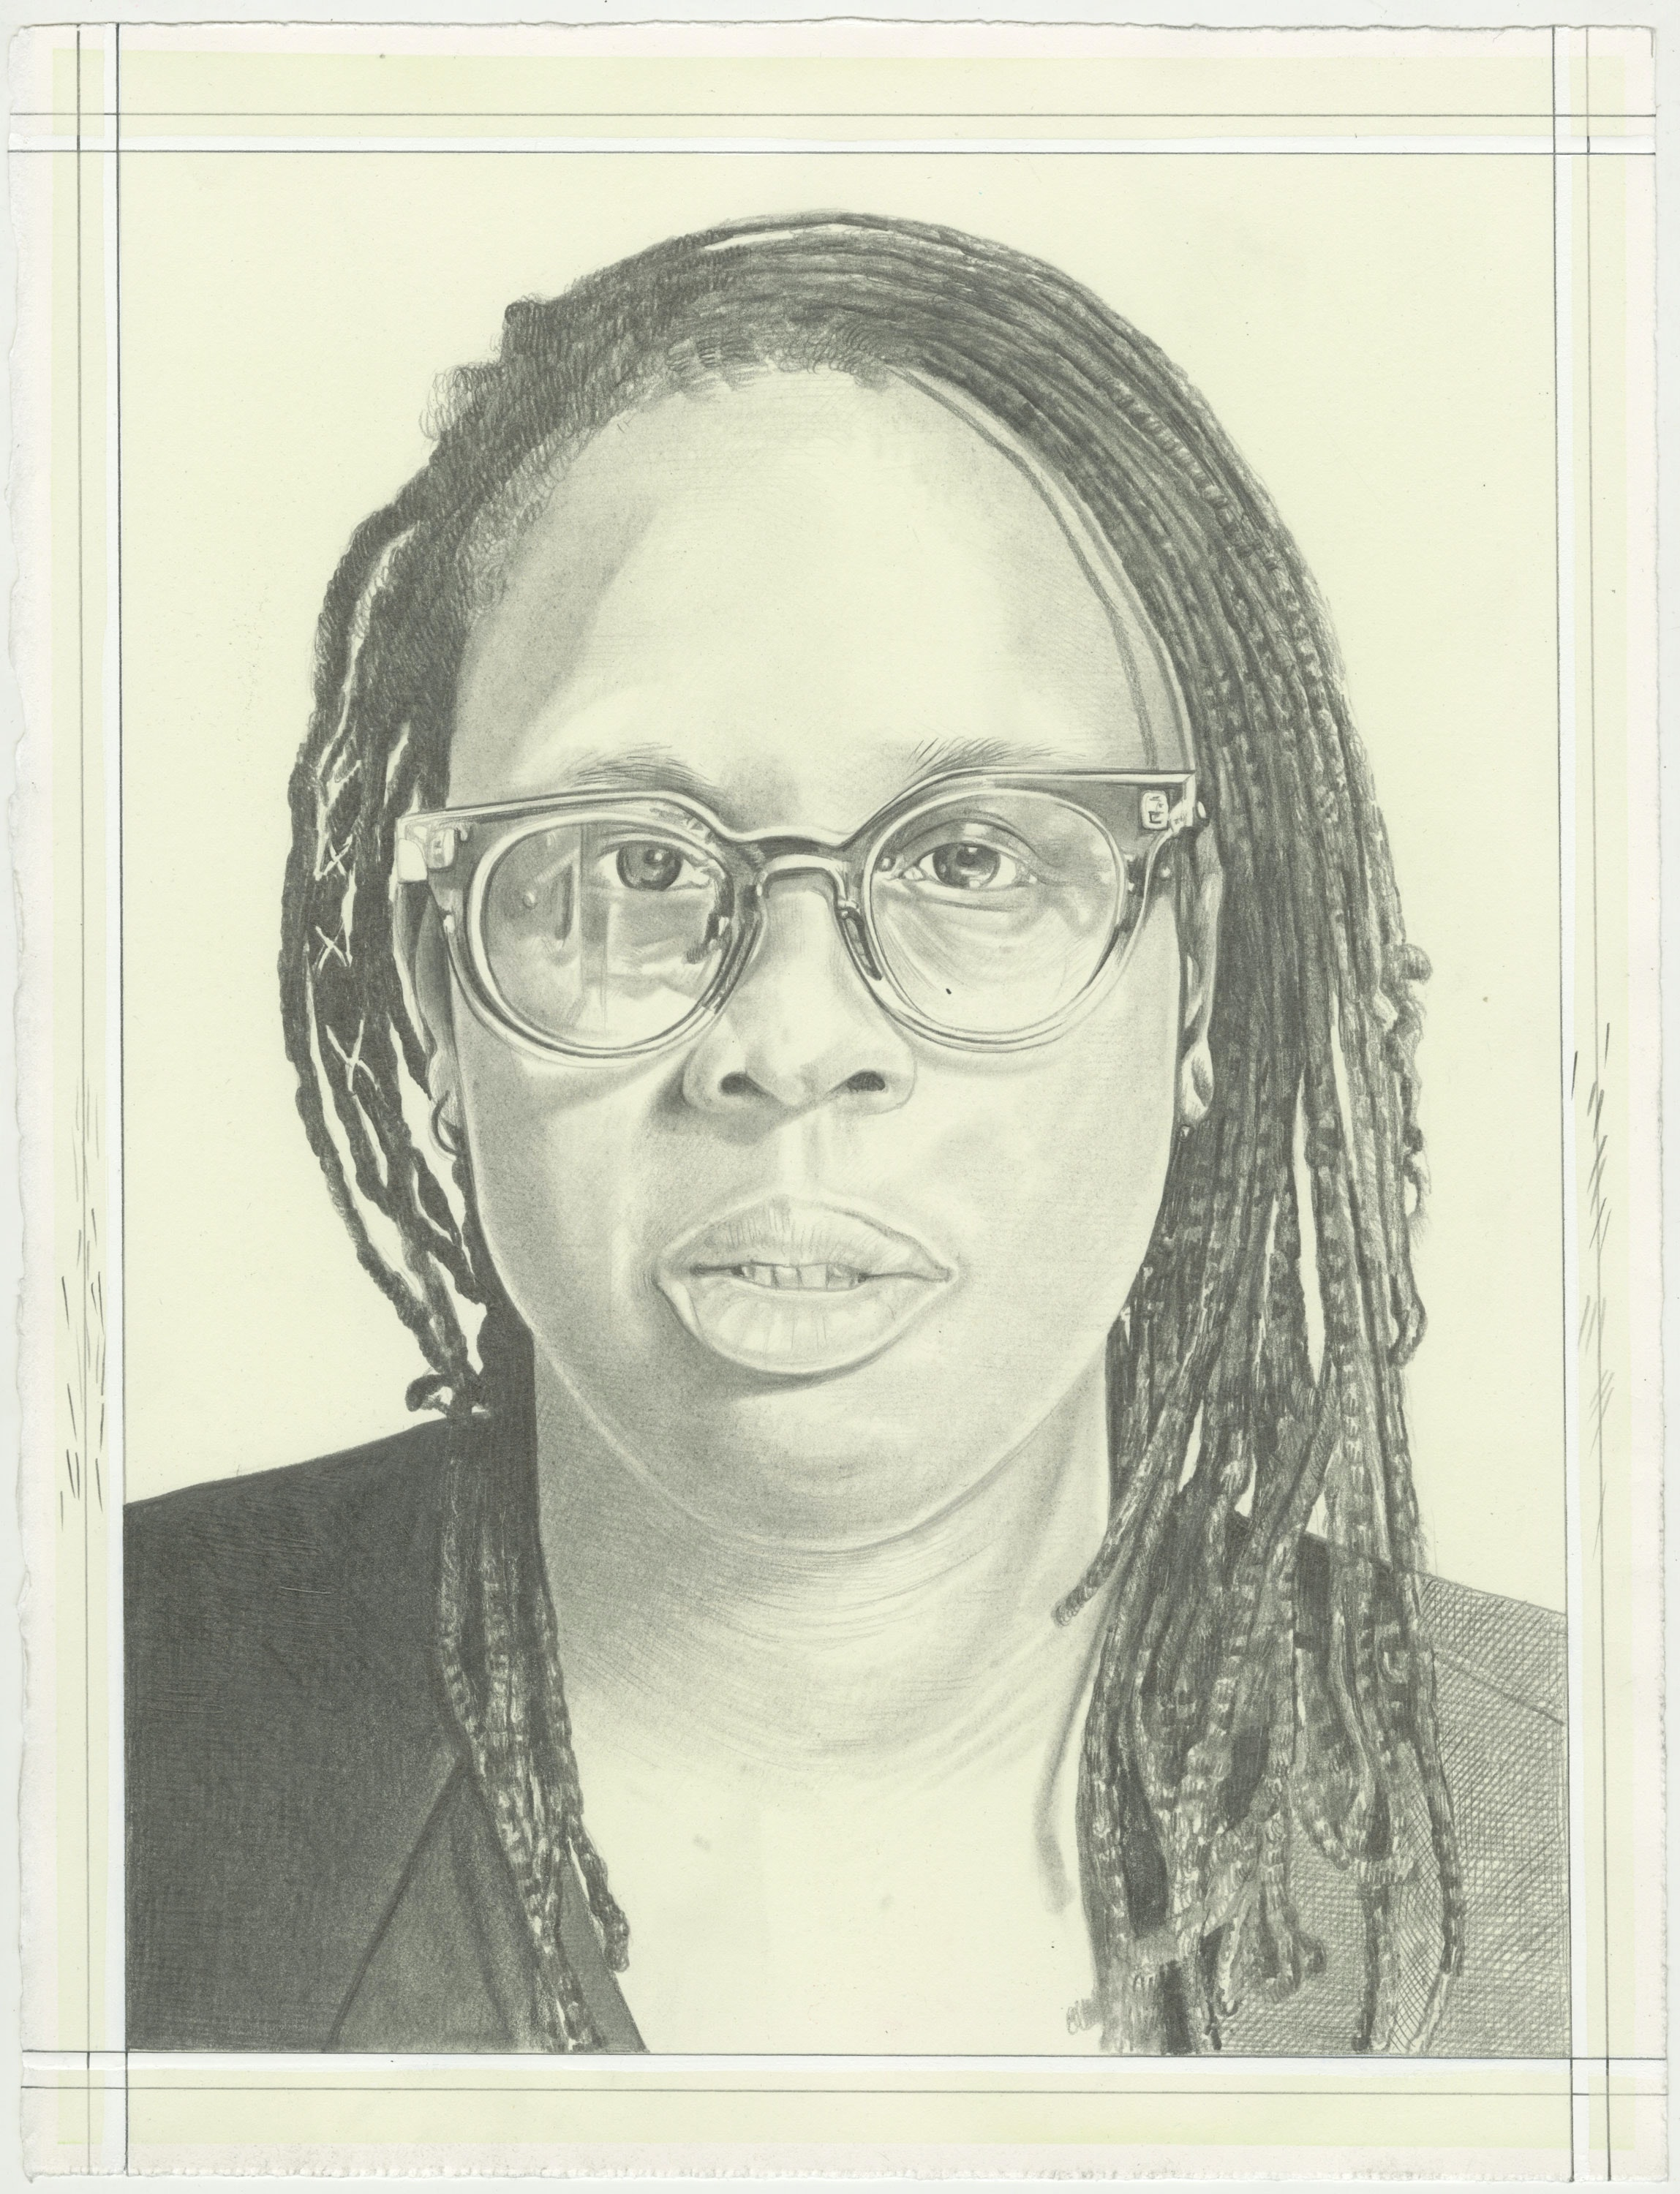 Portrait of Mickalene Thomas, pencil on paper by Phong H. Bui. Photo: Andrew Mangum